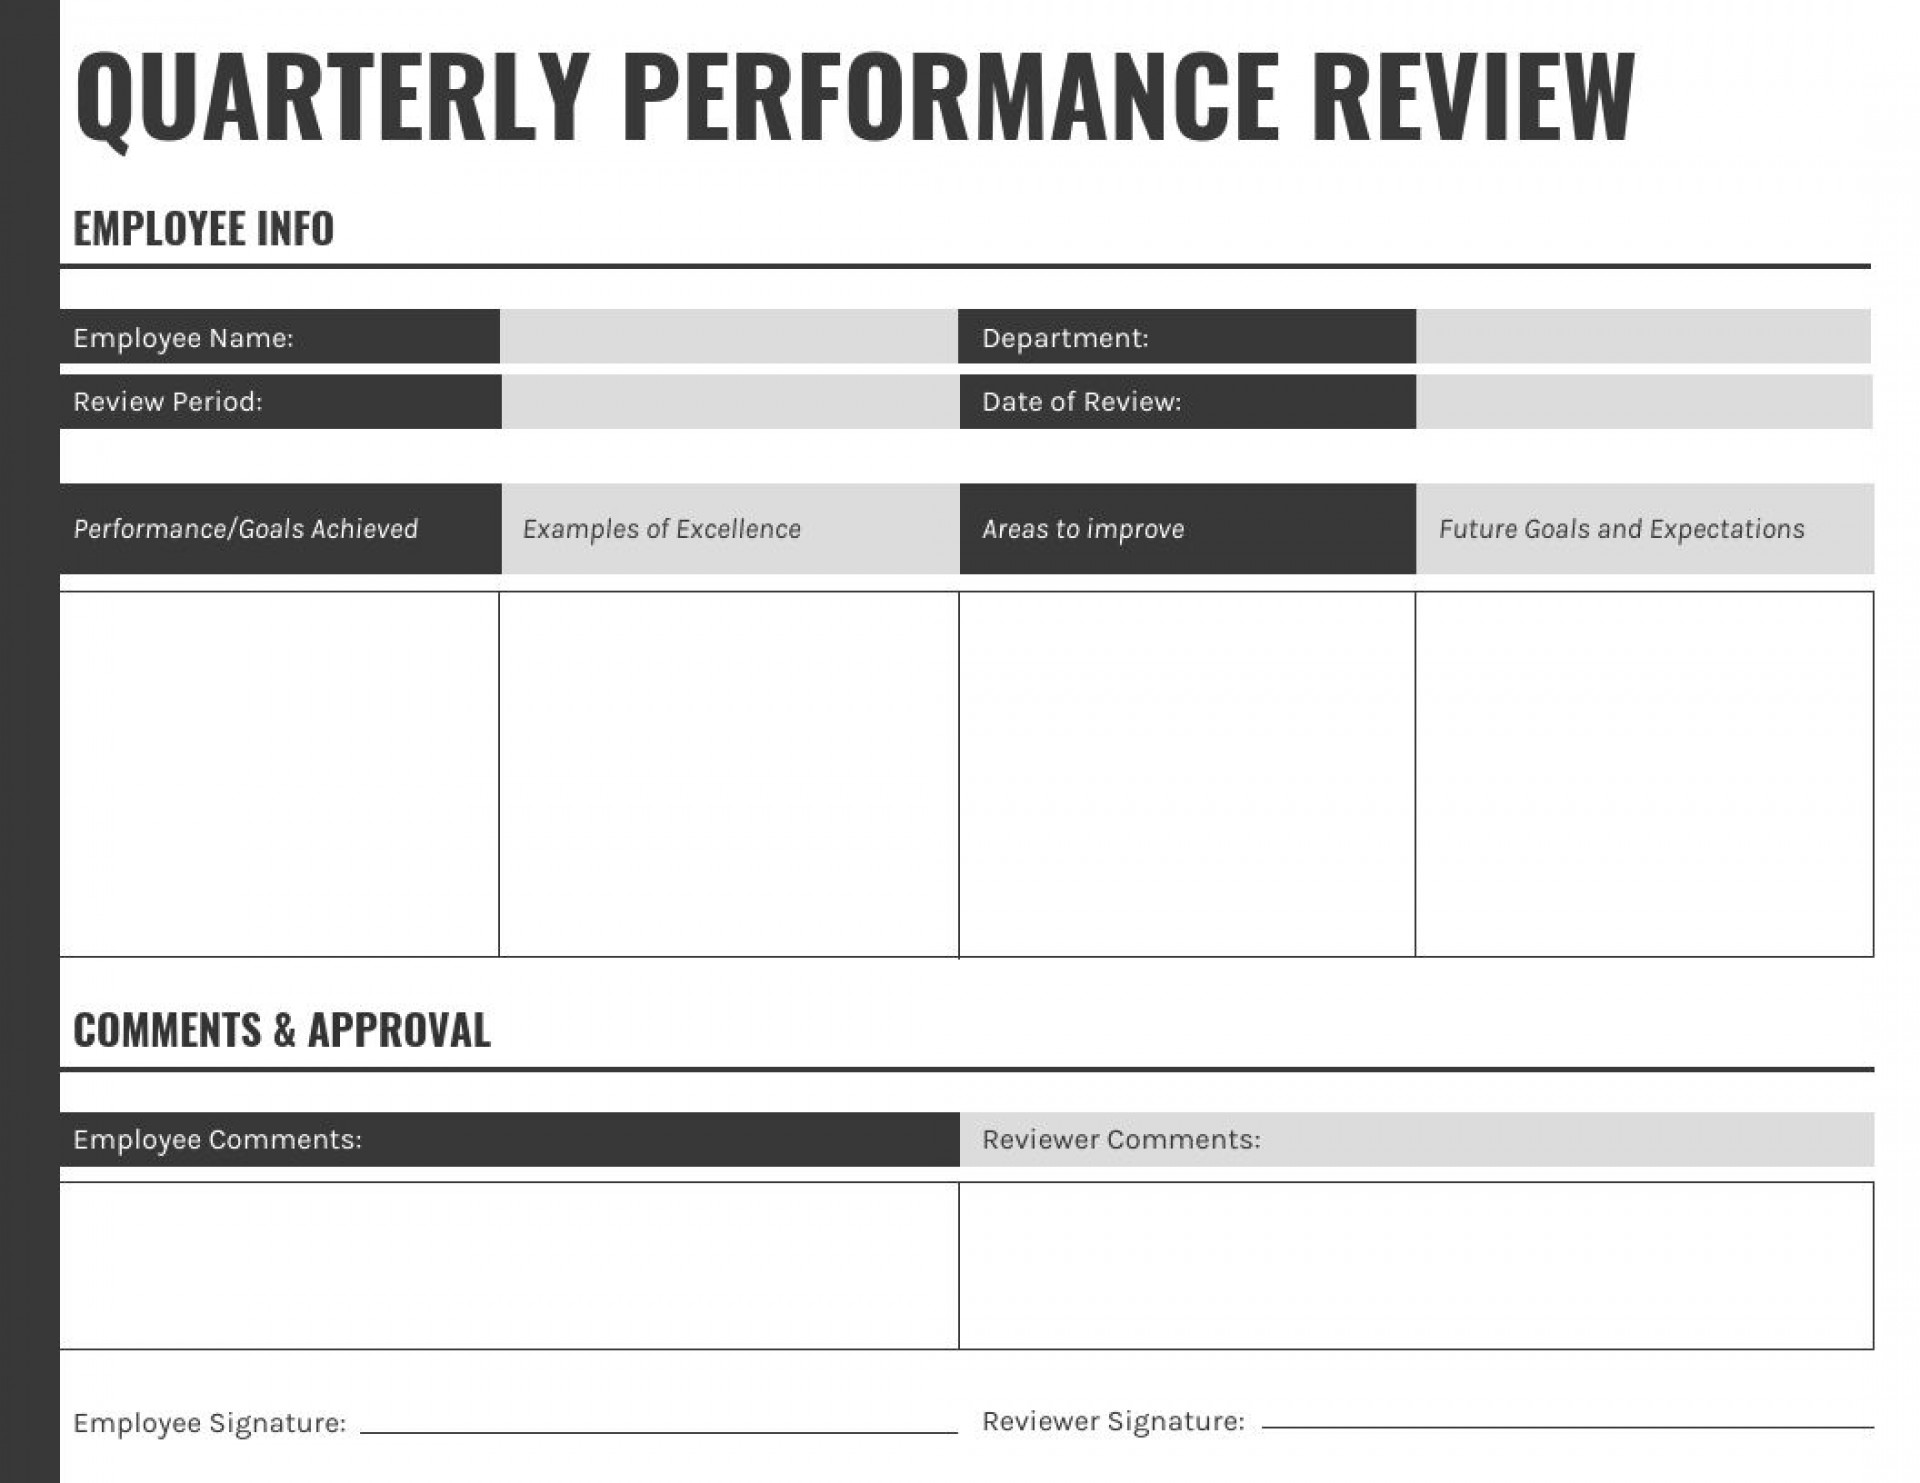 004 Rare Employee Performance Evaluation Template Picture  Templates Doc Form Free Download Appraisal Word1920